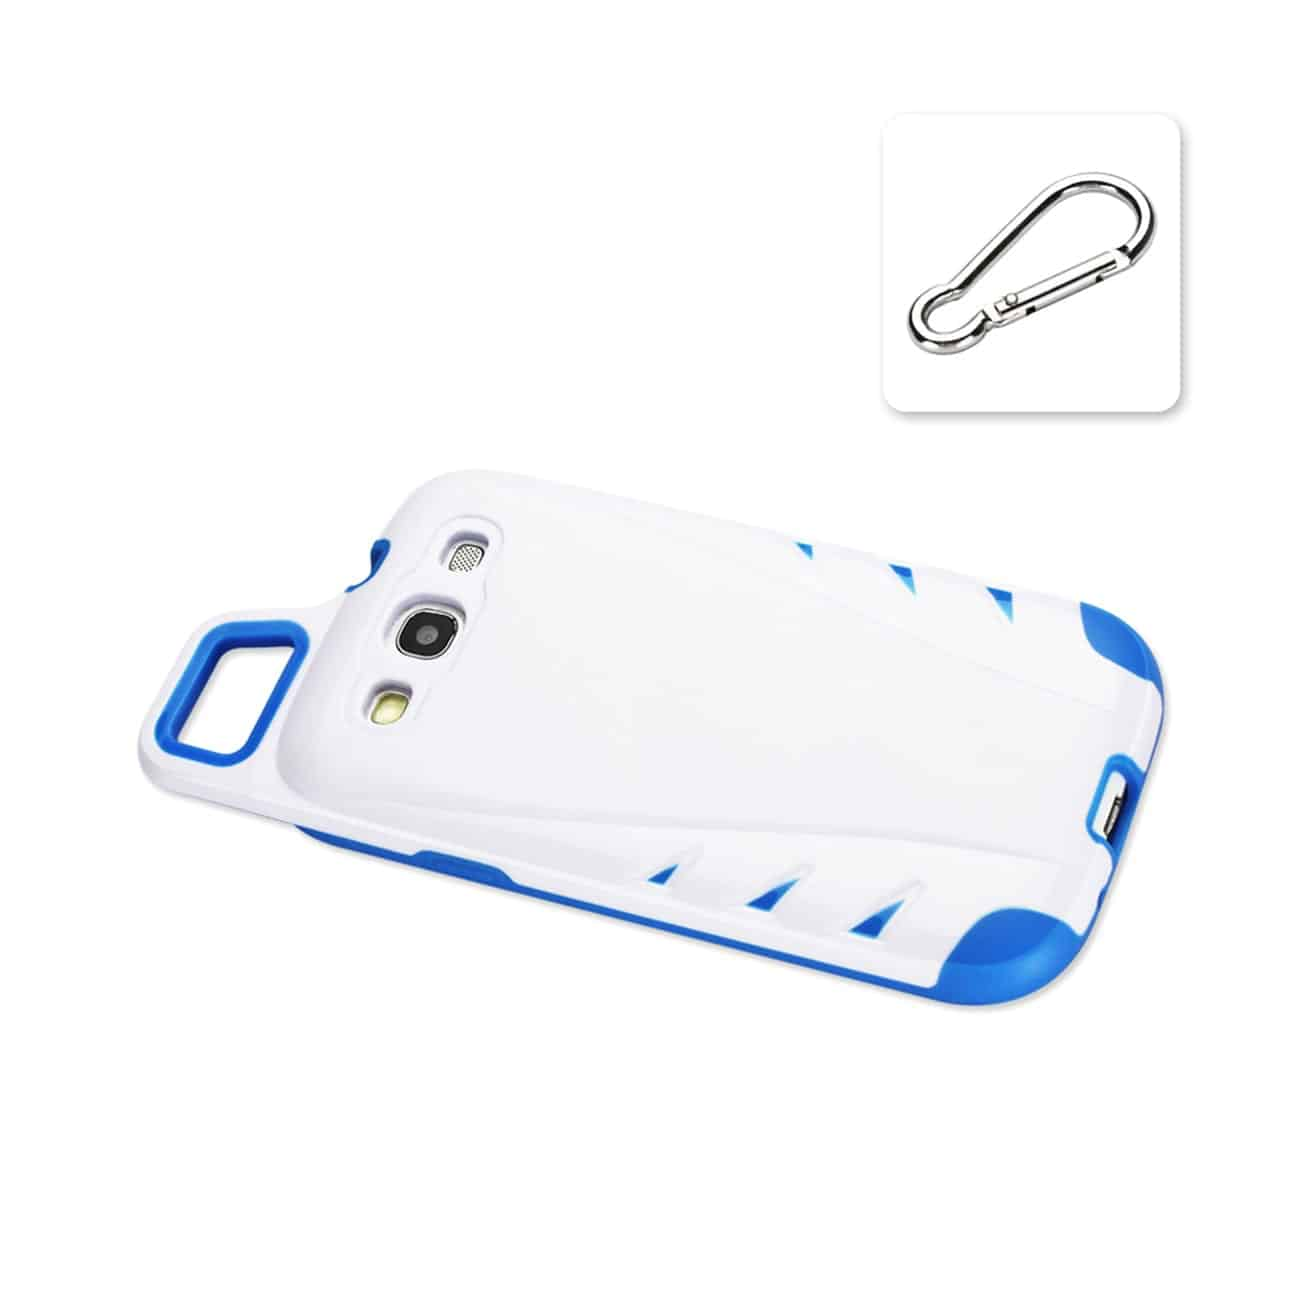 SAMSUNG GALAXY S3 DROPPROOF WORKOUT HYBRID CASE WITH HOOK IN WHITE NAVY